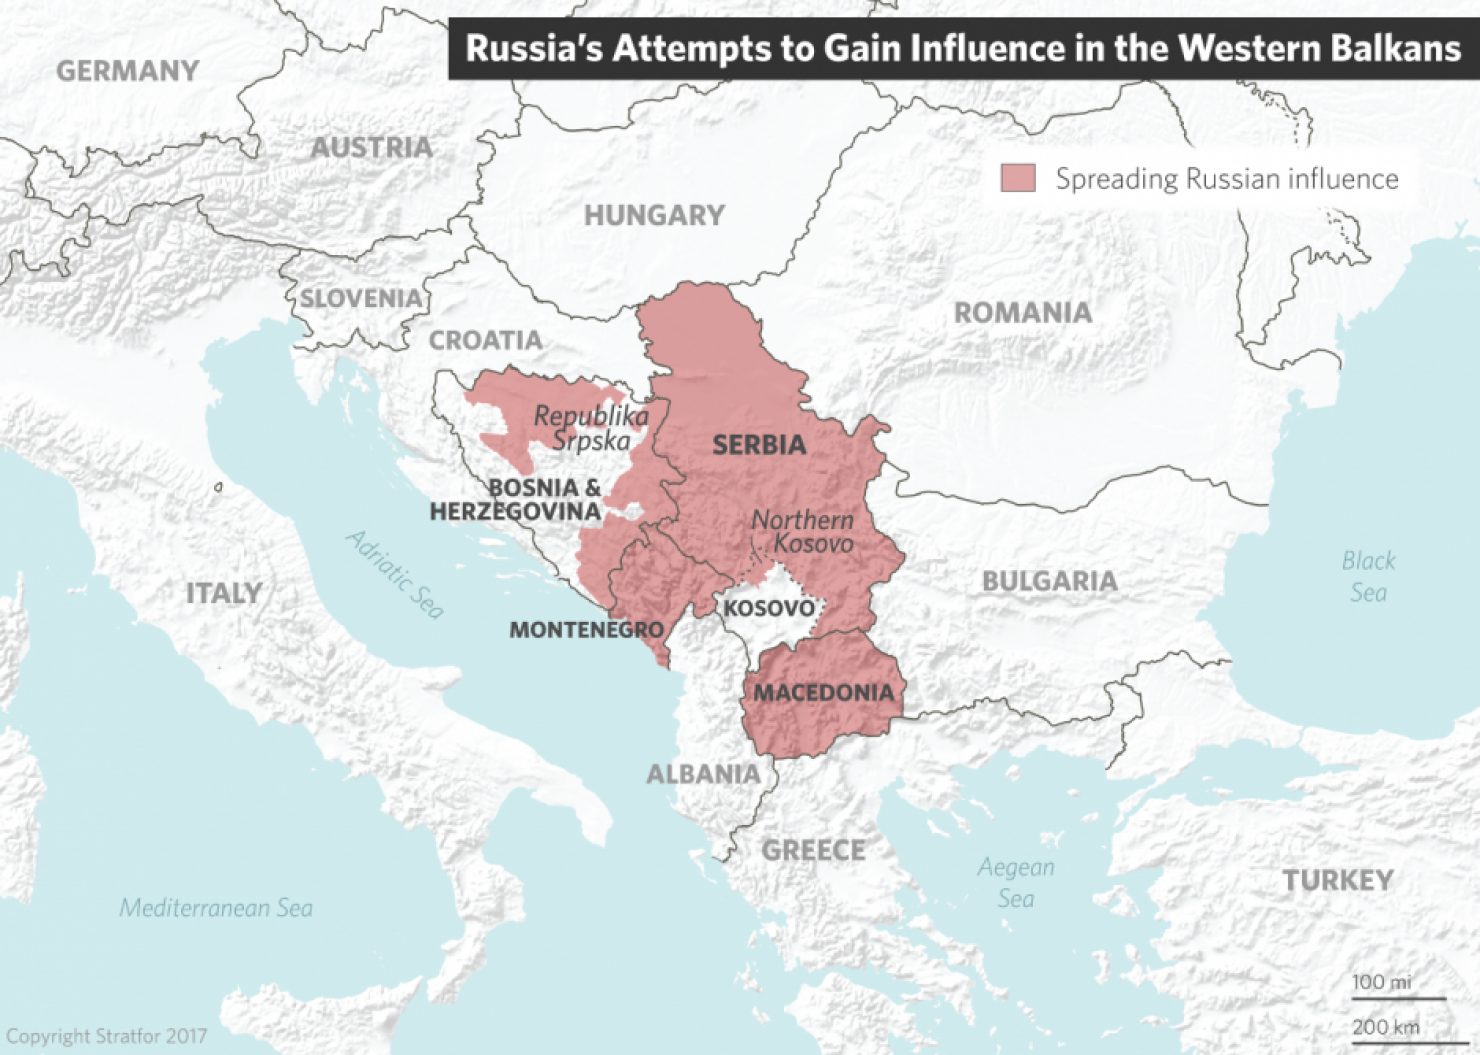 an analysis of the conflict in the balkans R w apple jr analysis notes that in hours before missiles began striking targets in kosovo, white house and state dept denied that nato was trying to bomb serbia back to bargaining table and force.